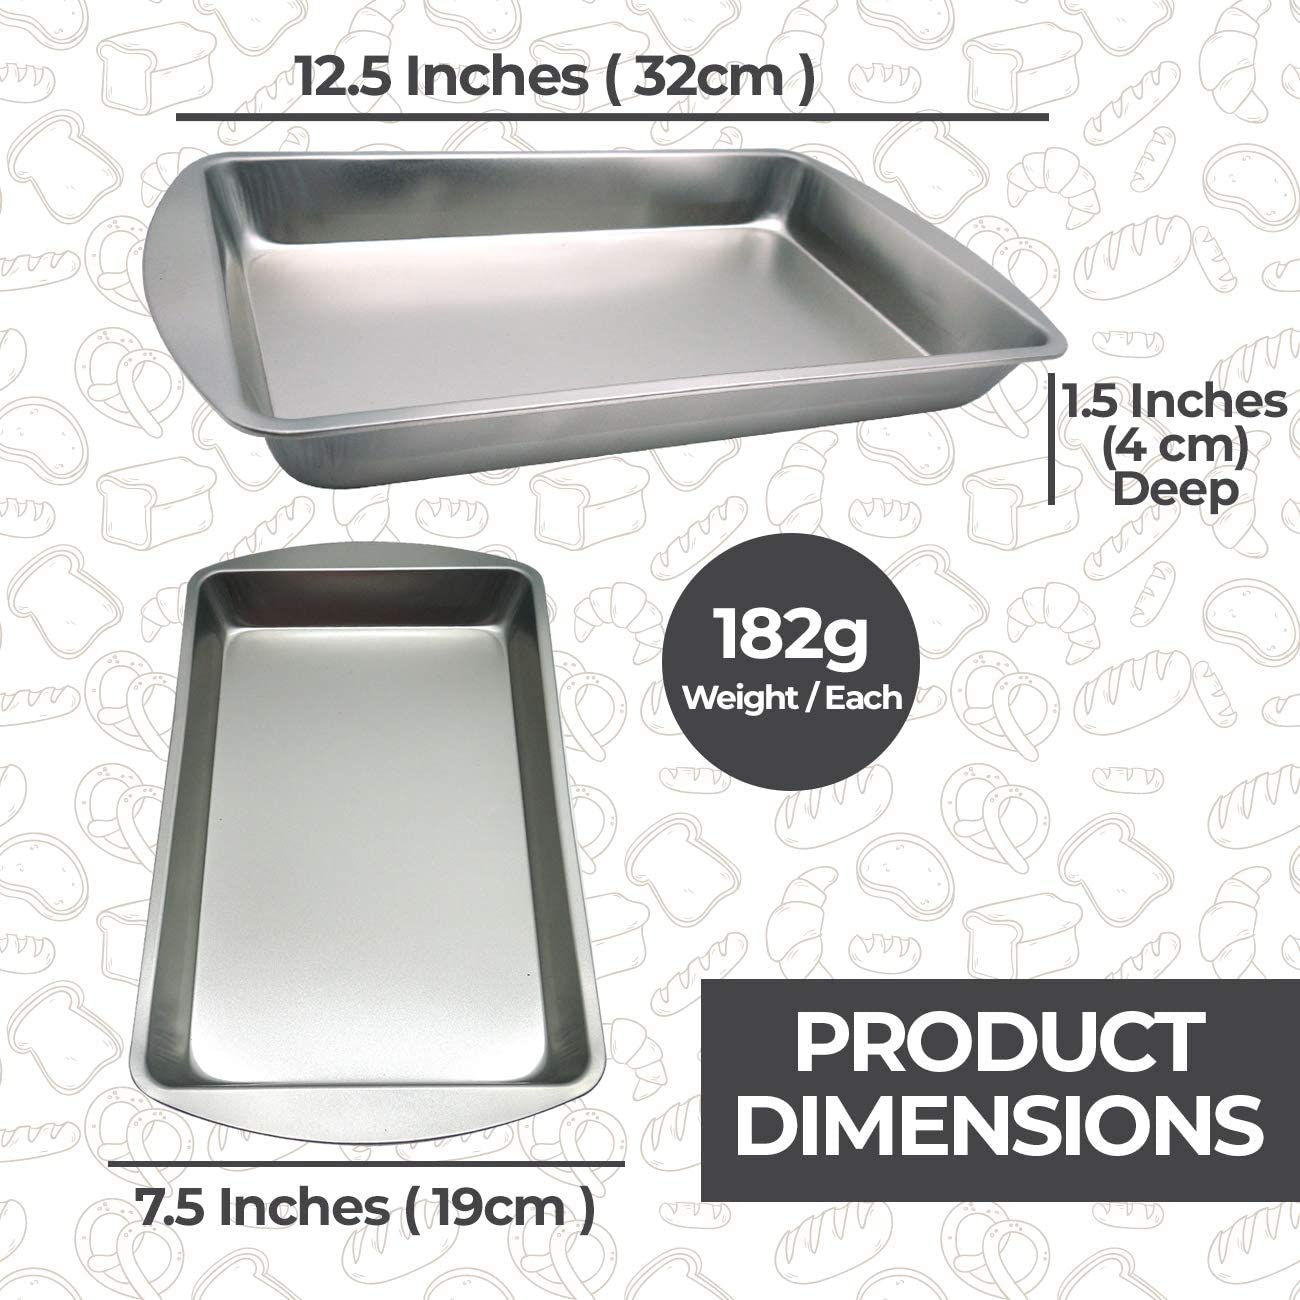 Oven Baking Tray Rectangular with Non-Stick Coating x 2 Deep Pan for Baking Lasagne /& Pies by Every Chef Essentials